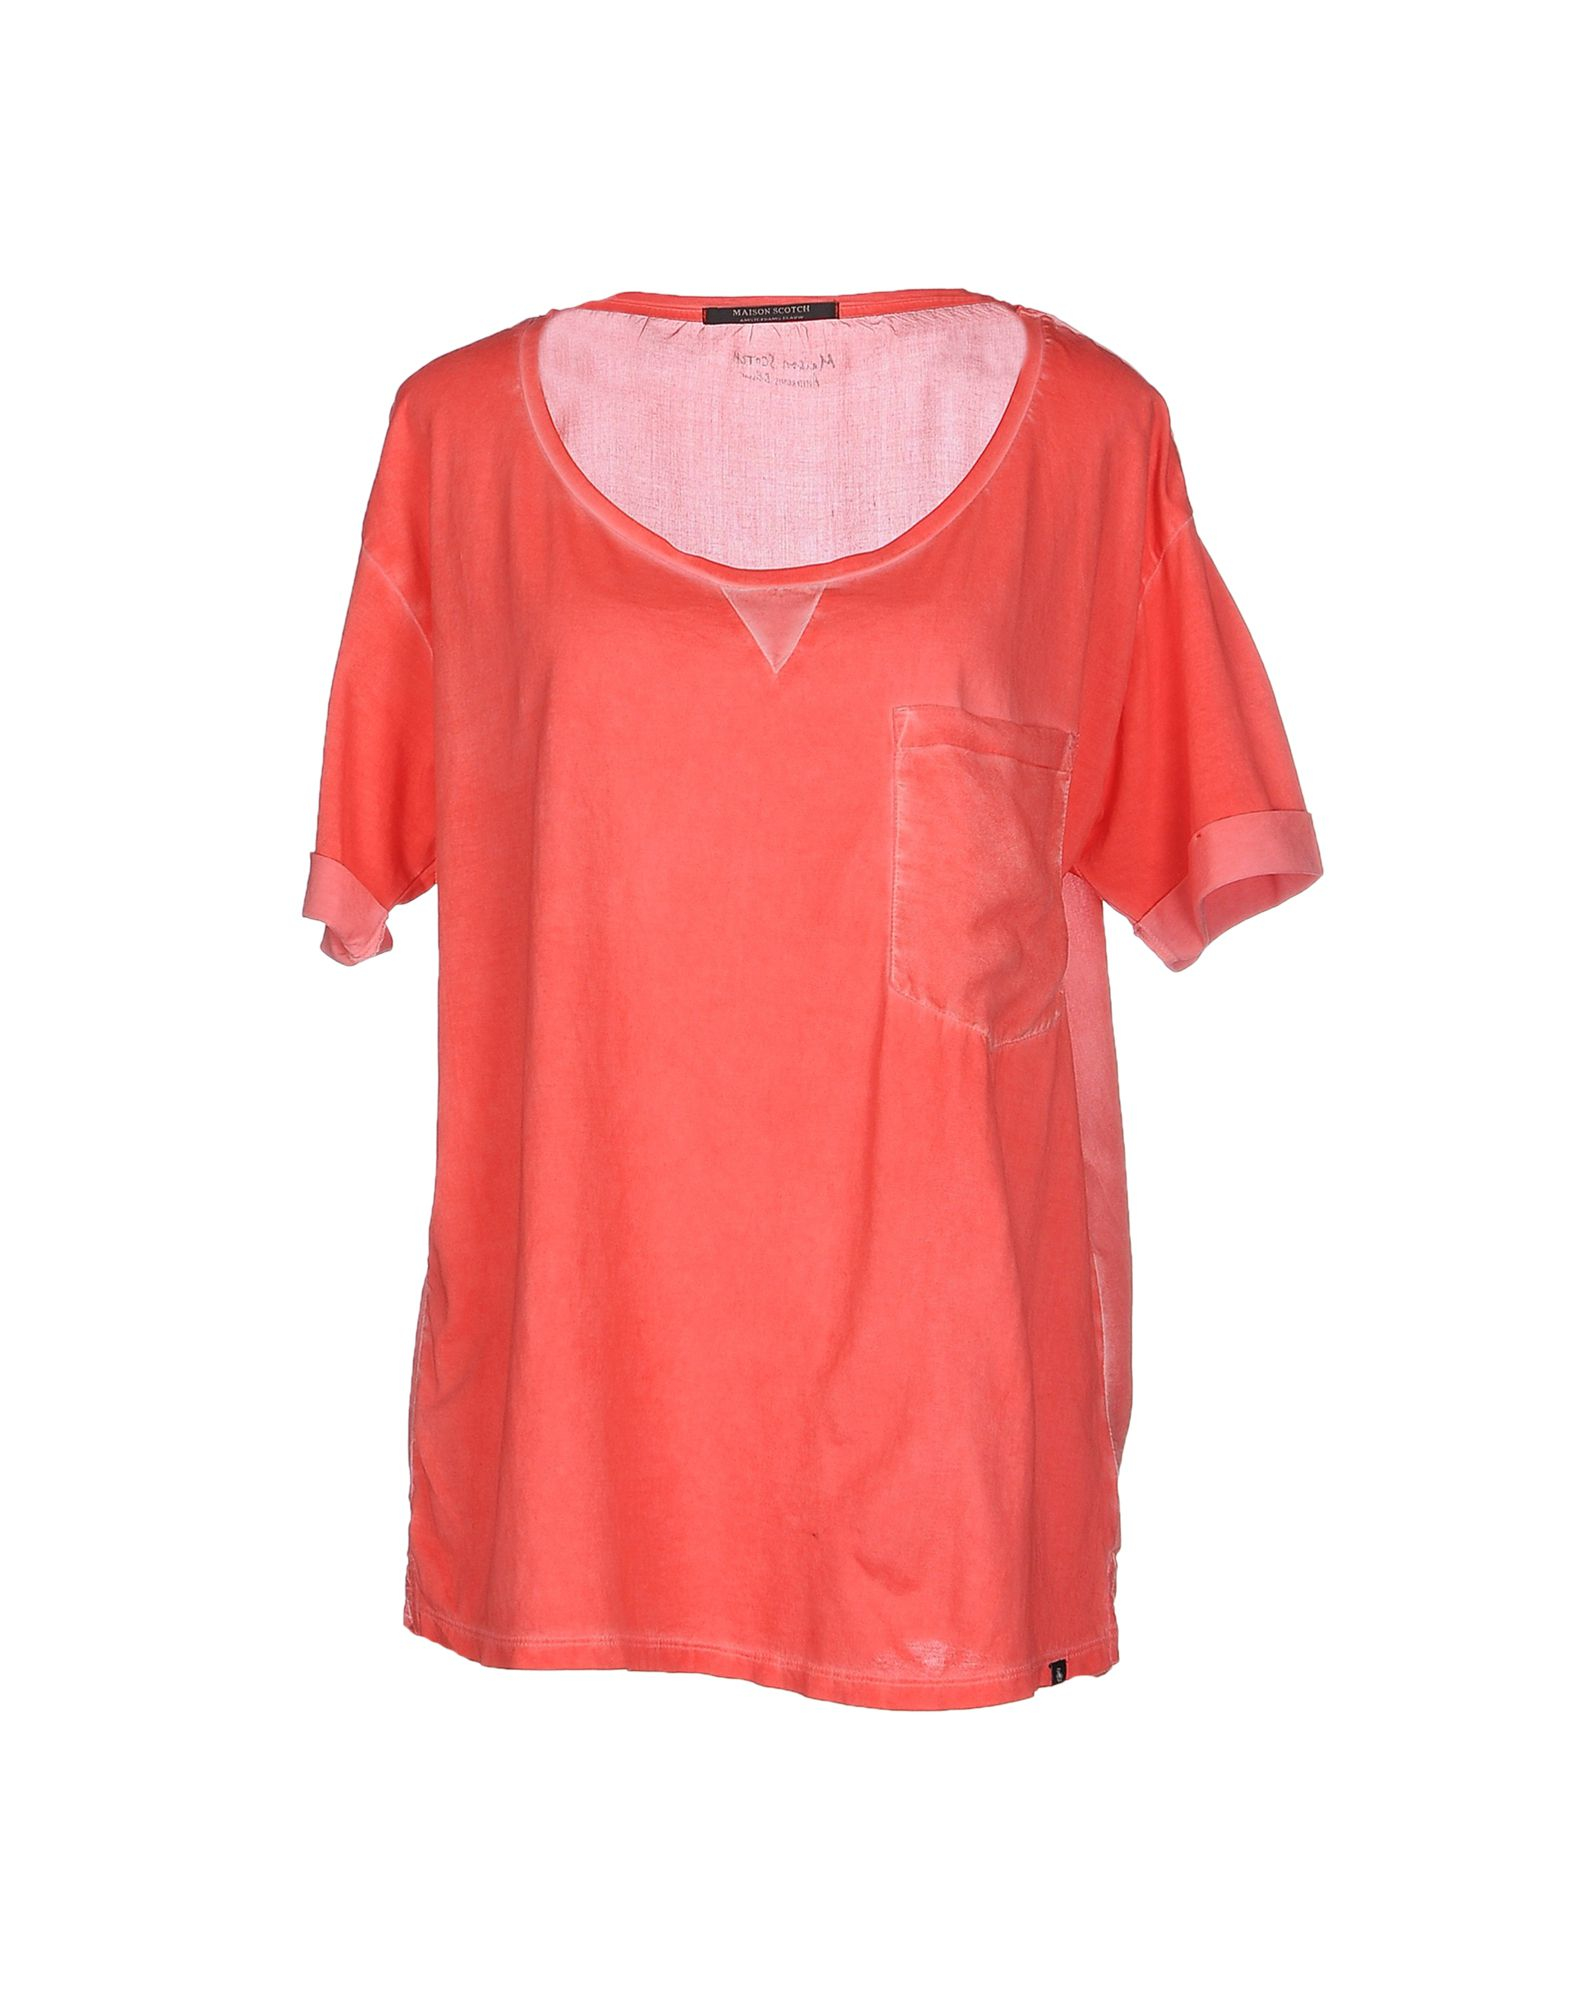 maison scotch t shirt in pink lyst